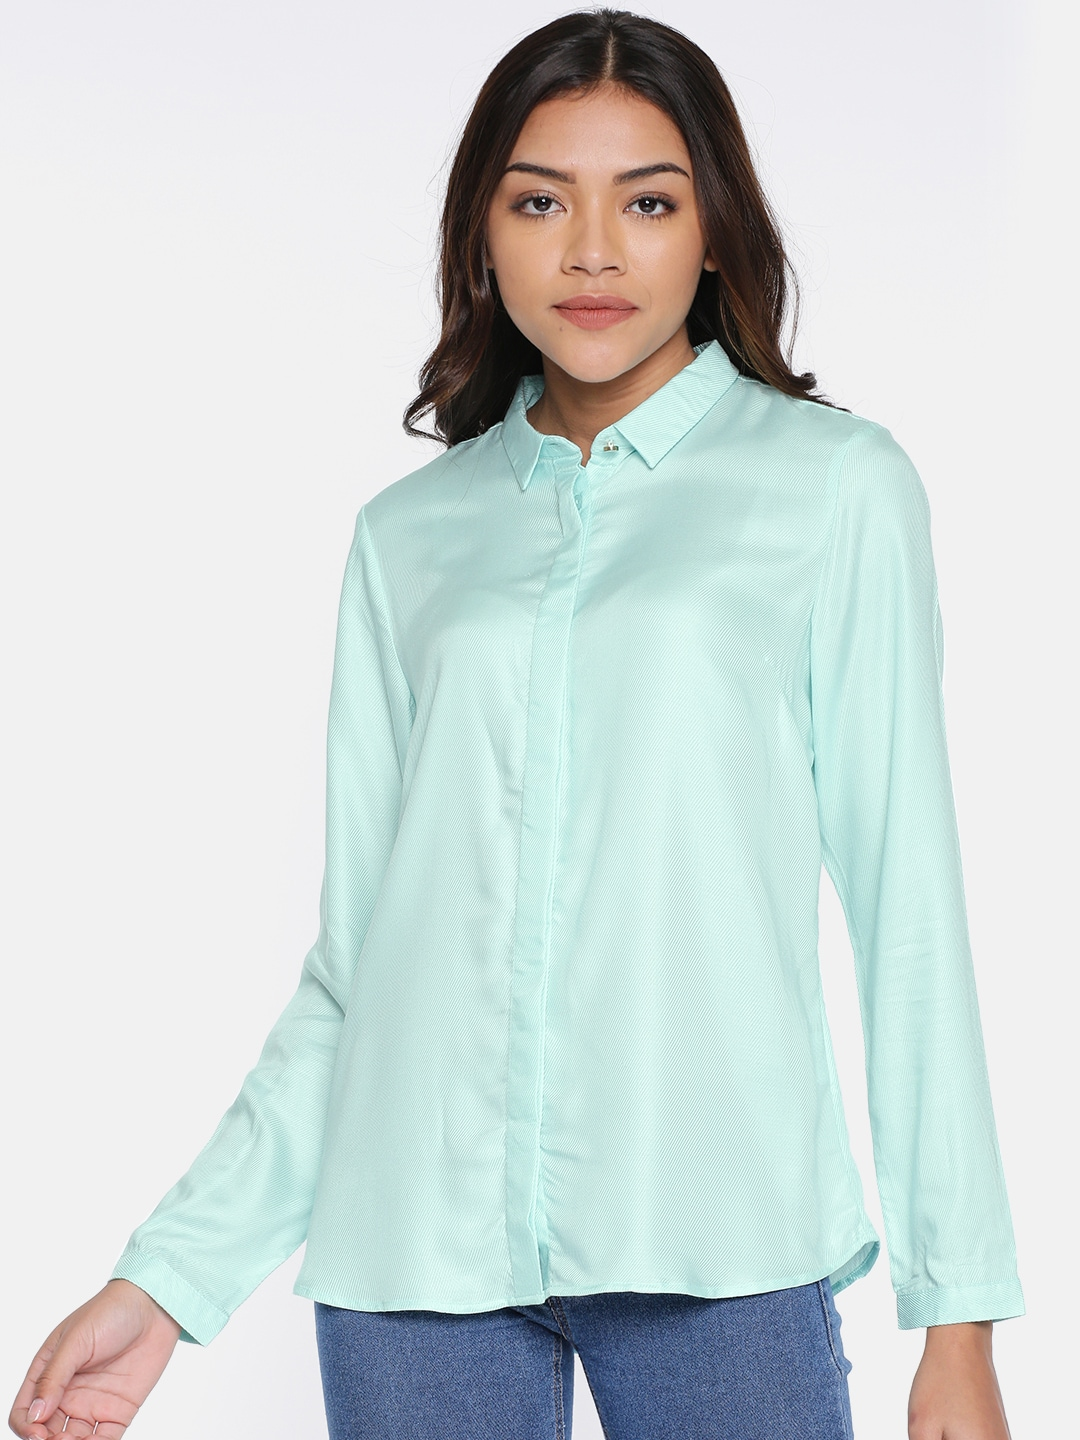 d7ebde0b65d8 Sea Green Shirts - Buy Sea Green Shirts online in India